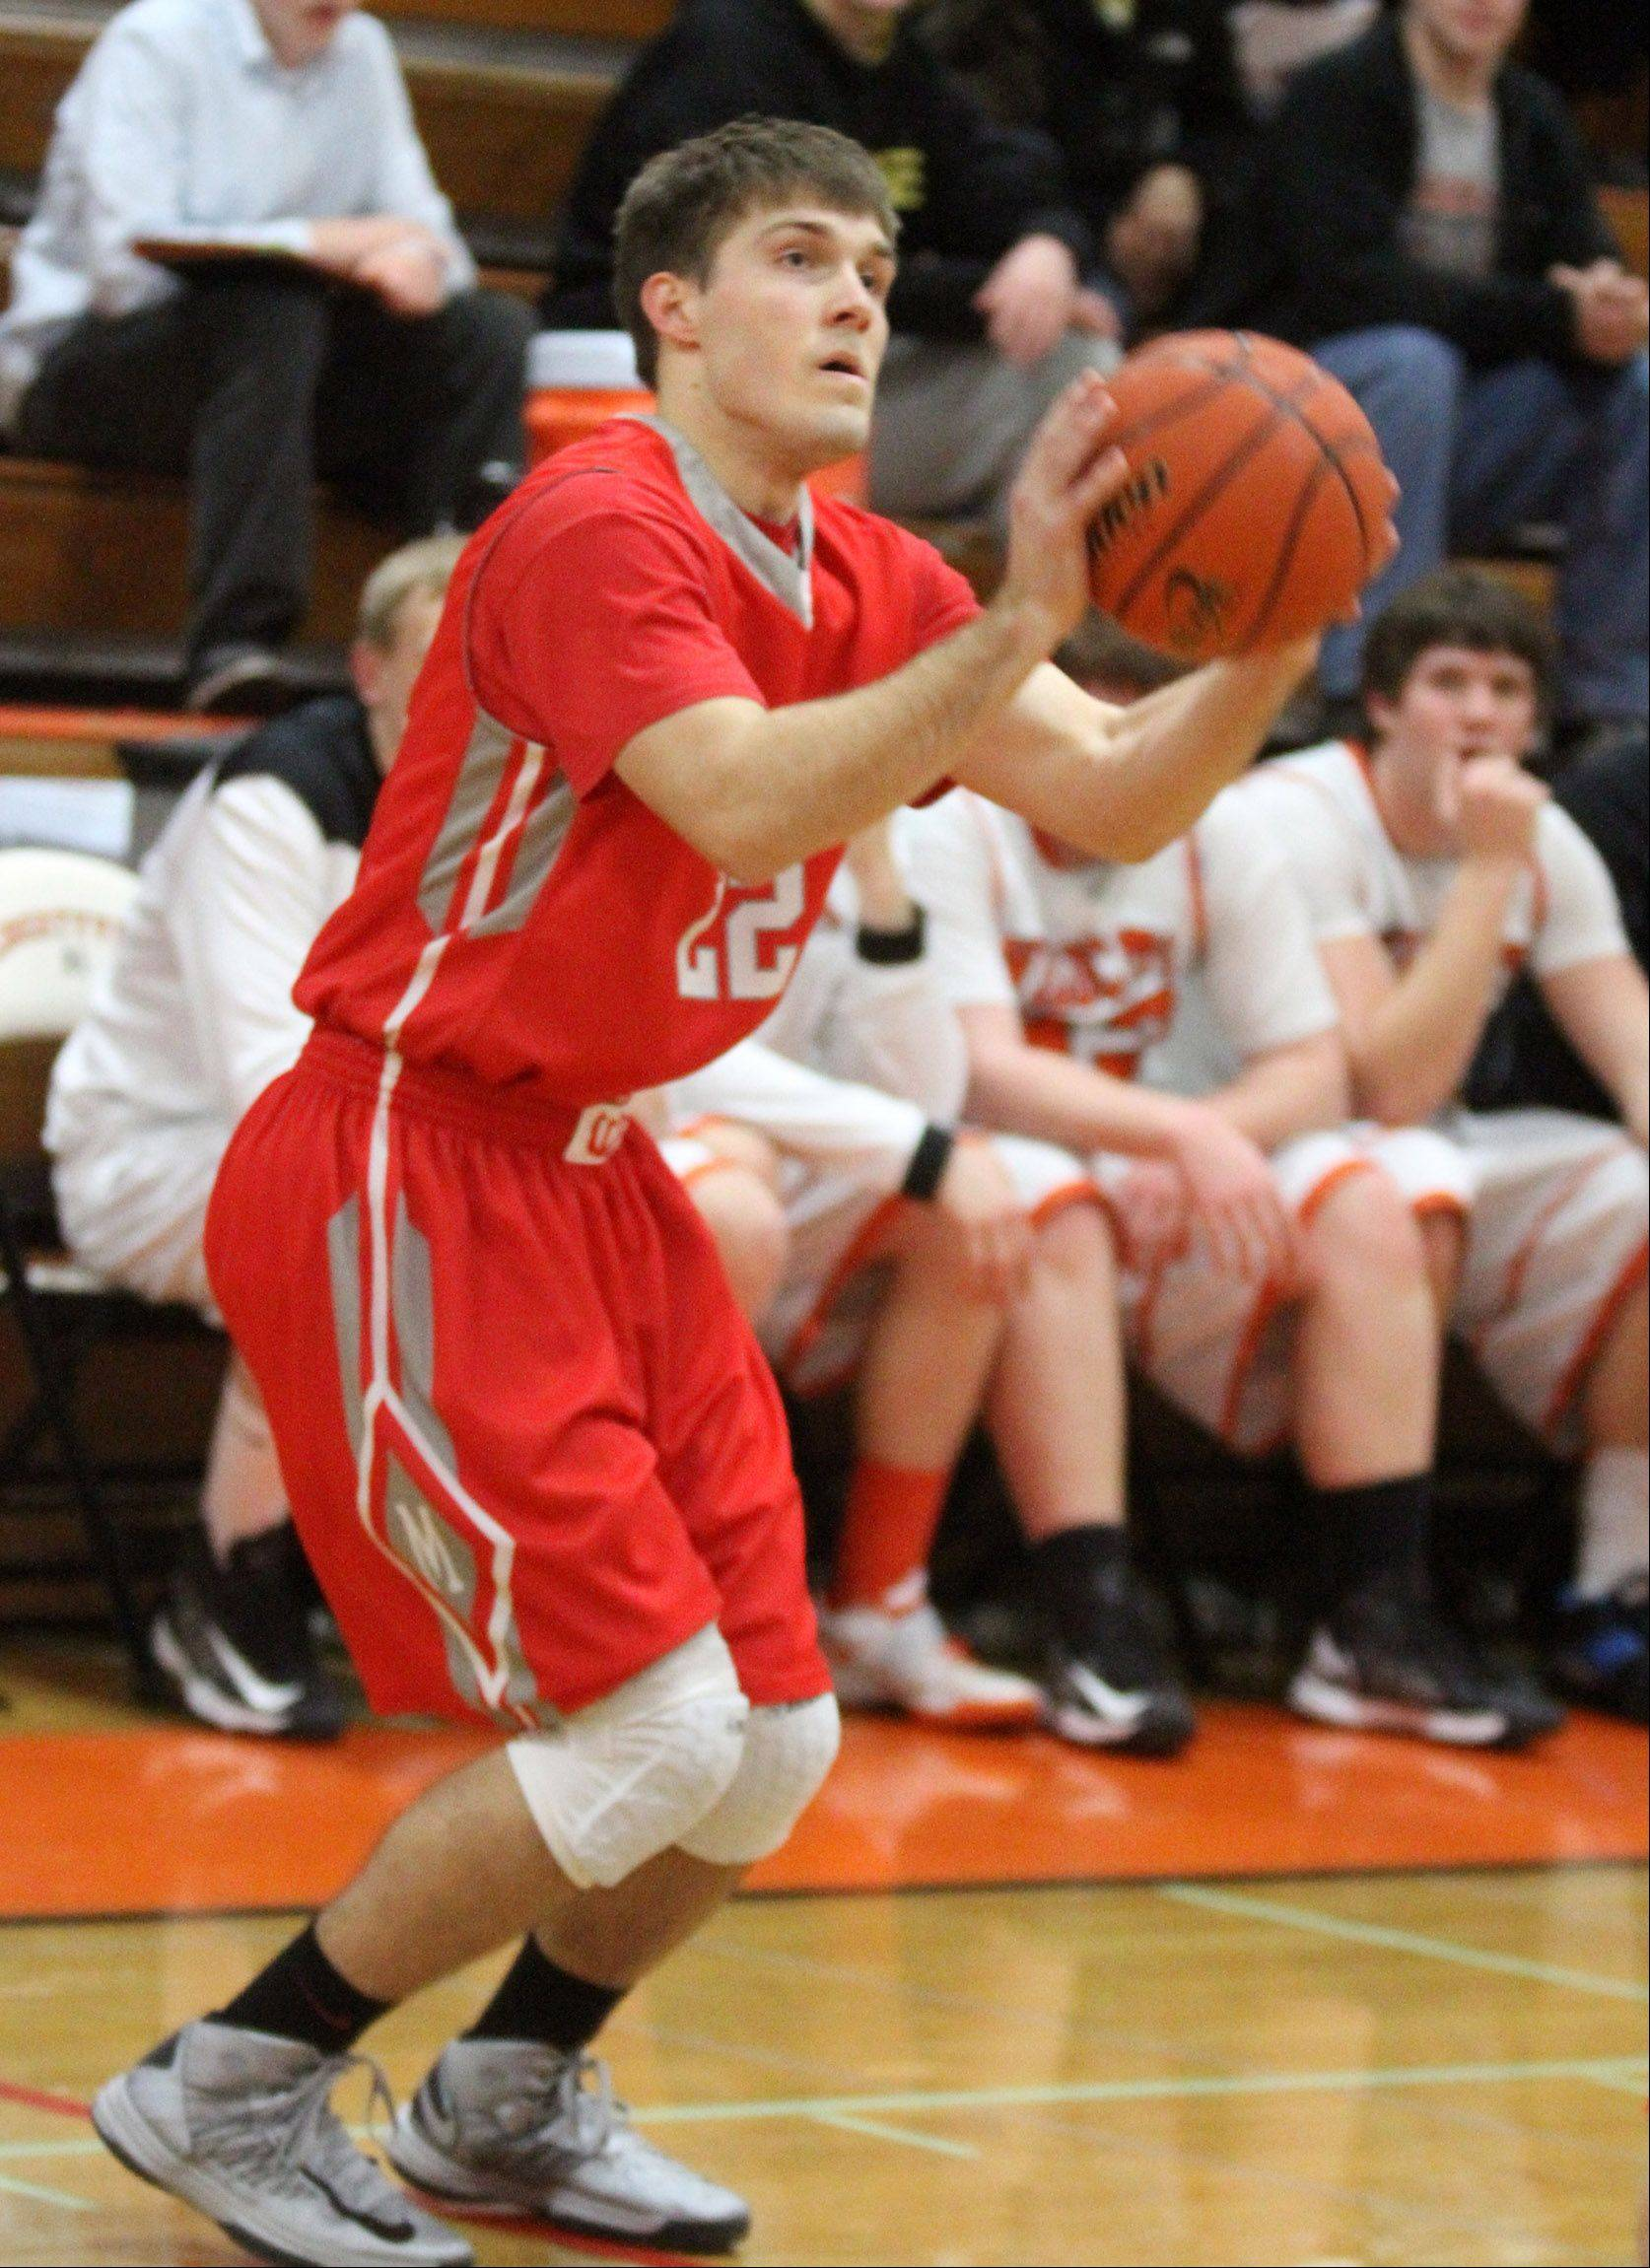 Mundelein guard Robert Knar shoots against Libertyville in the first half.